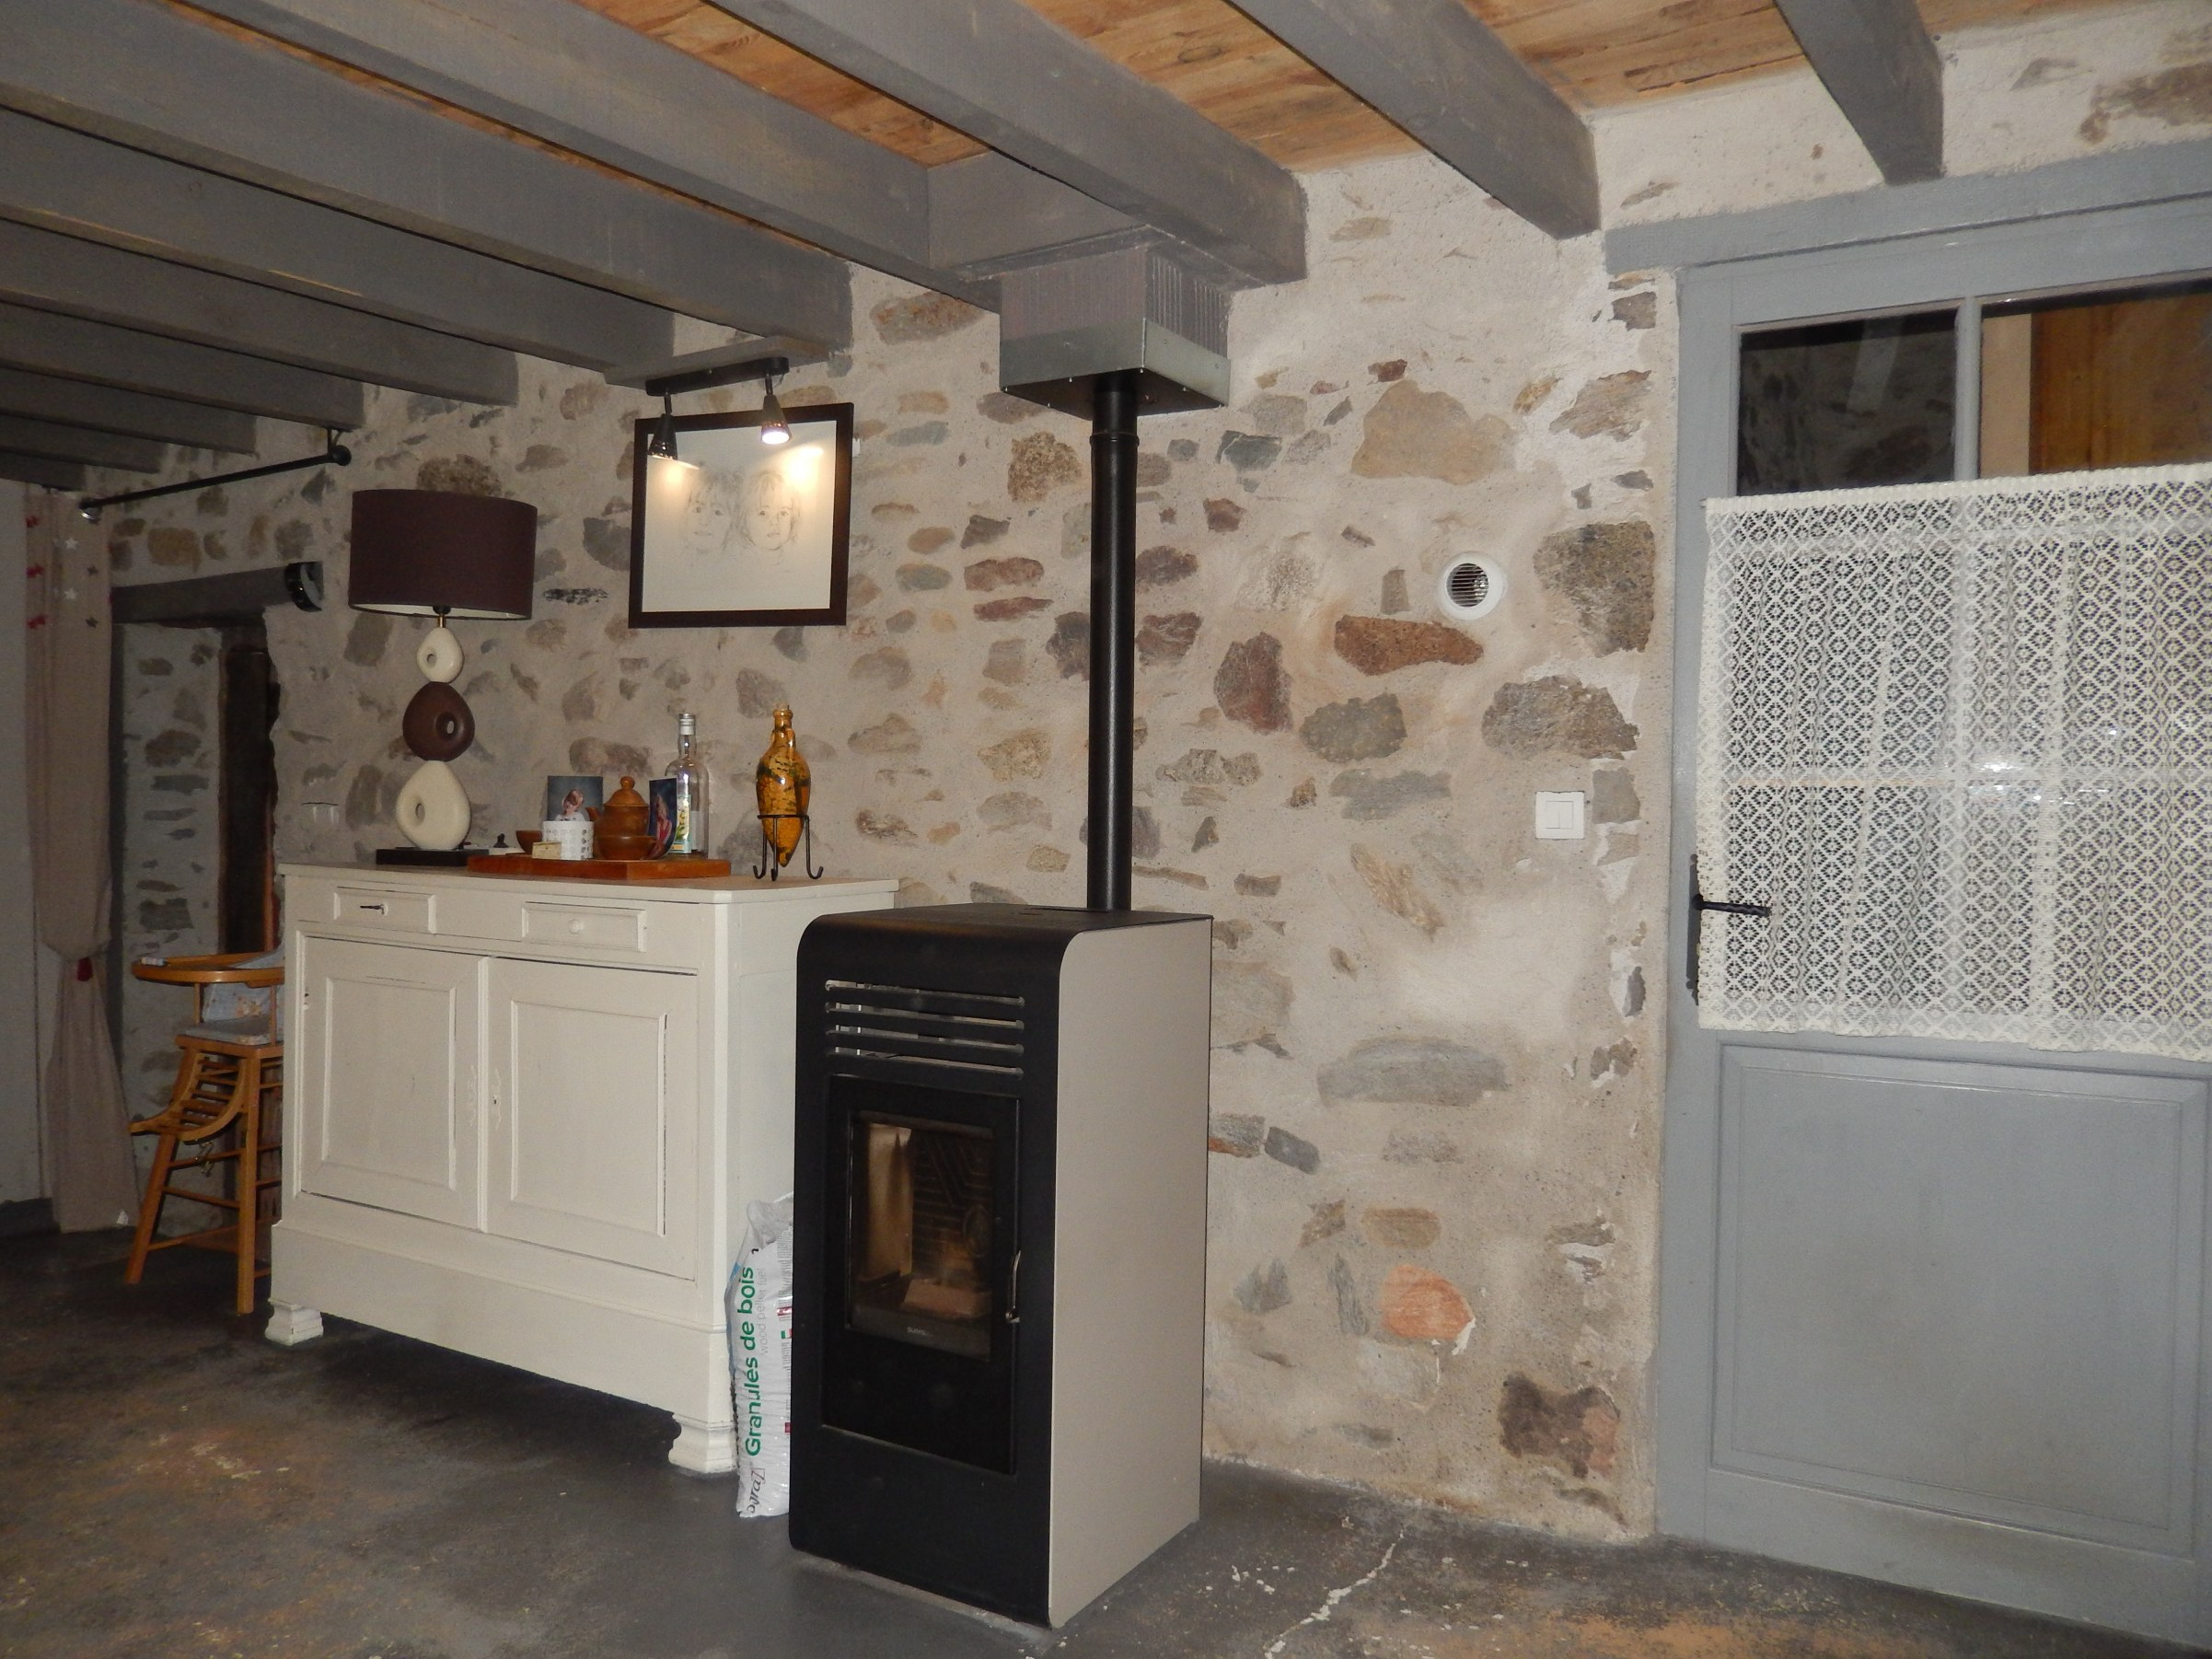 chambre-hotes-auvergne-salle-table-d-hote-fenetre-meuble-cheminee